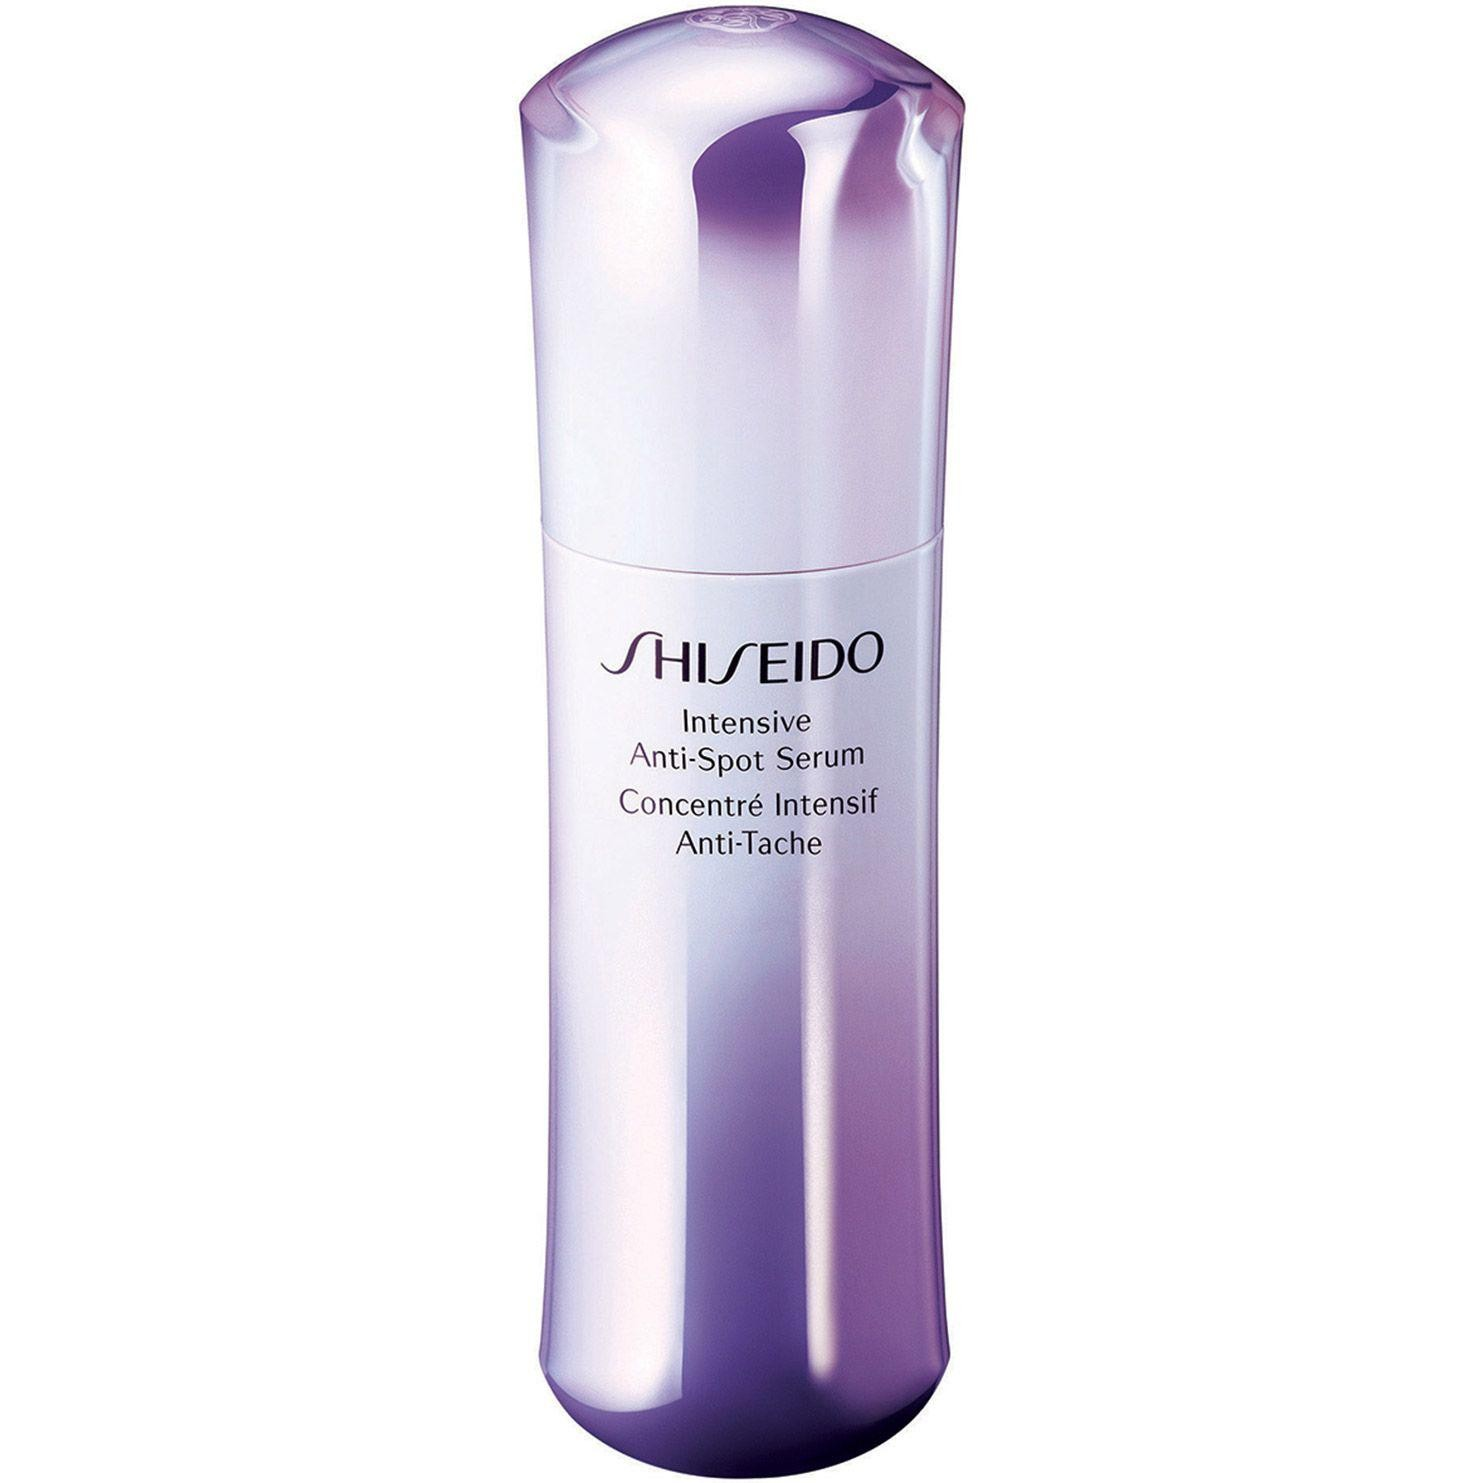 Shiseido Intensive Anti Spot Serum Skin Serum  30ml Women kosmētika ķermenim